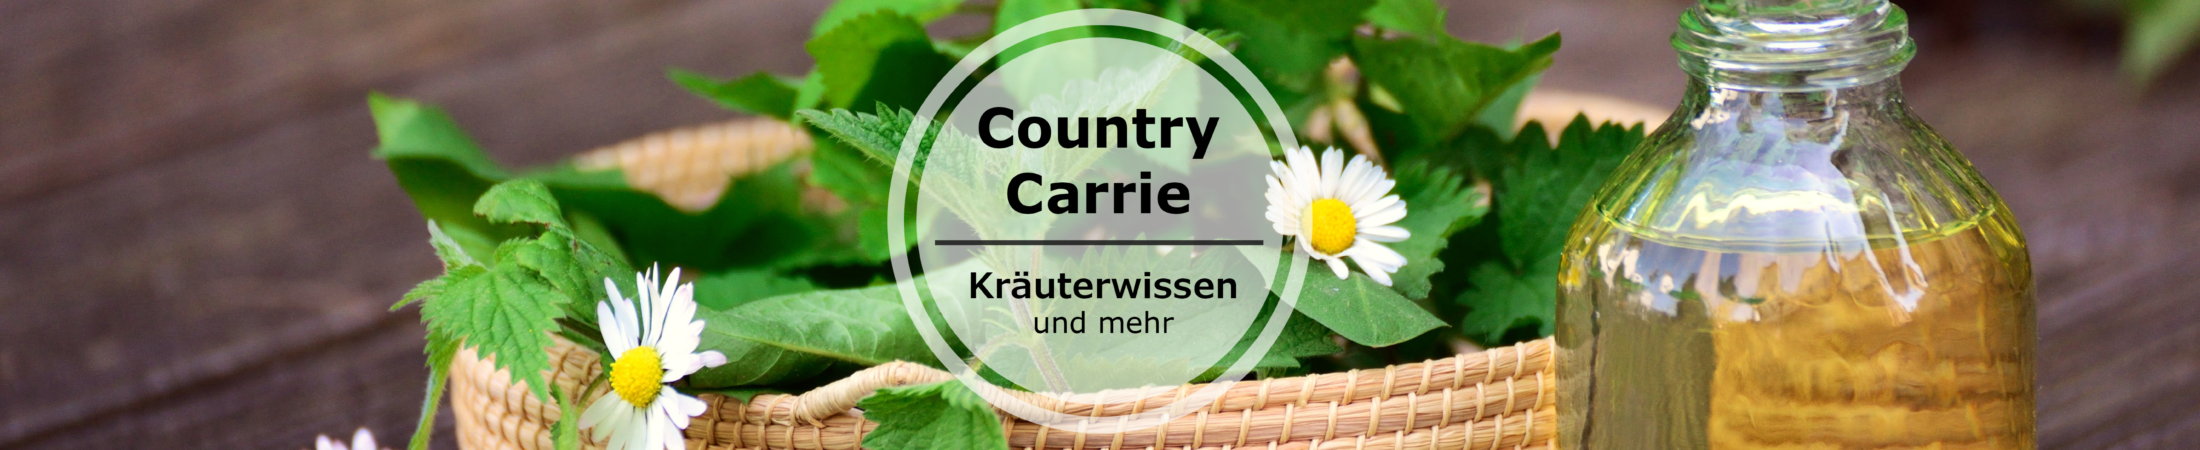 Country Carrie